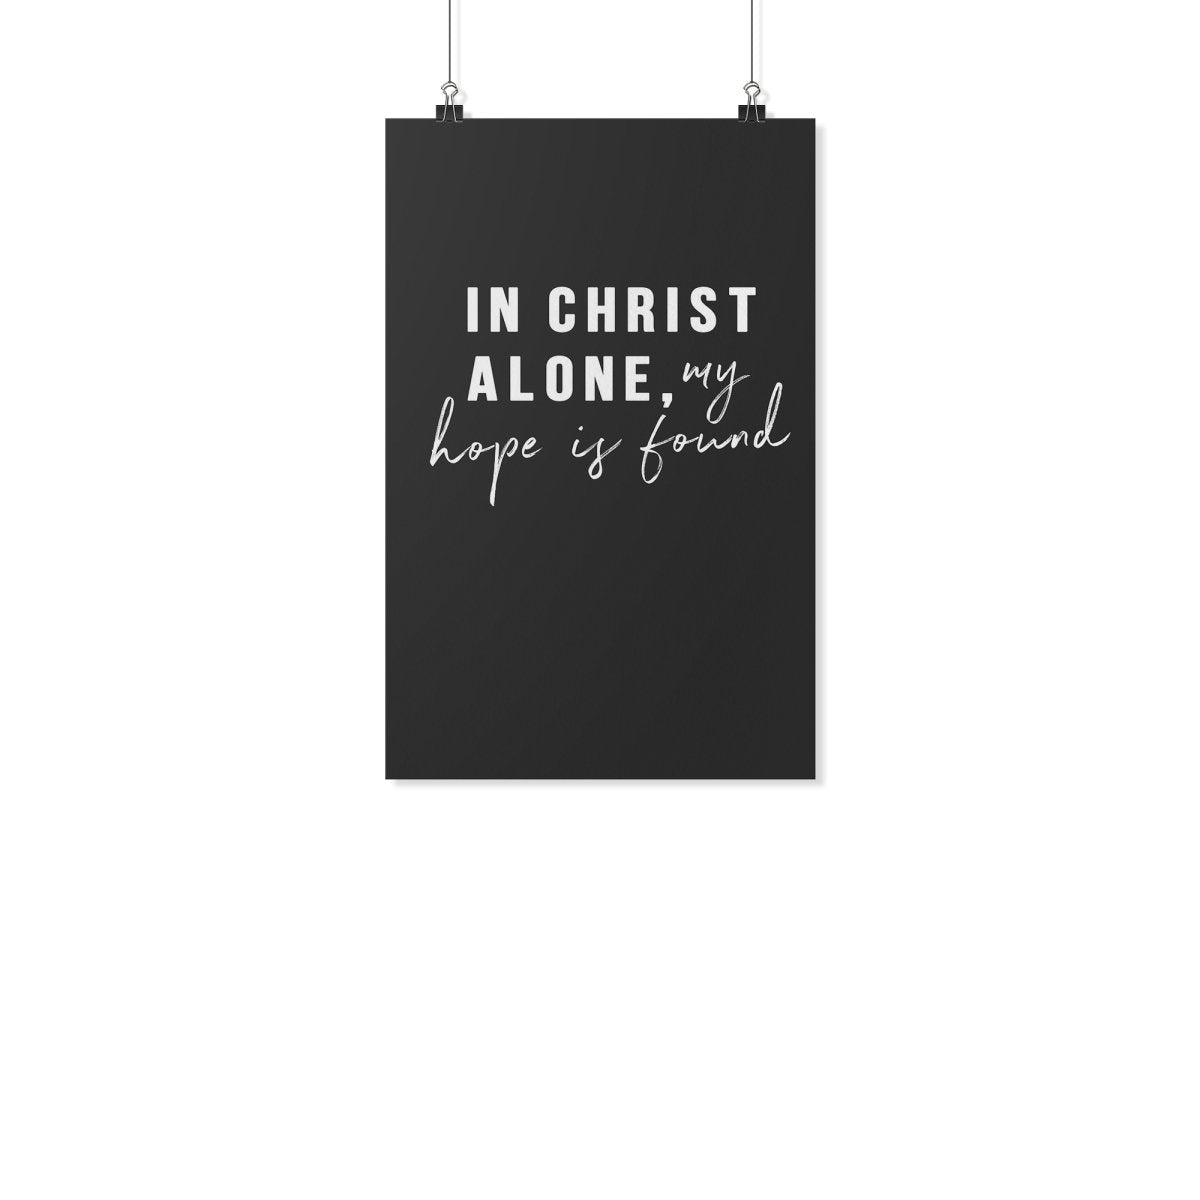 In Christ Alone (Wall Poster) - SDG Clothing